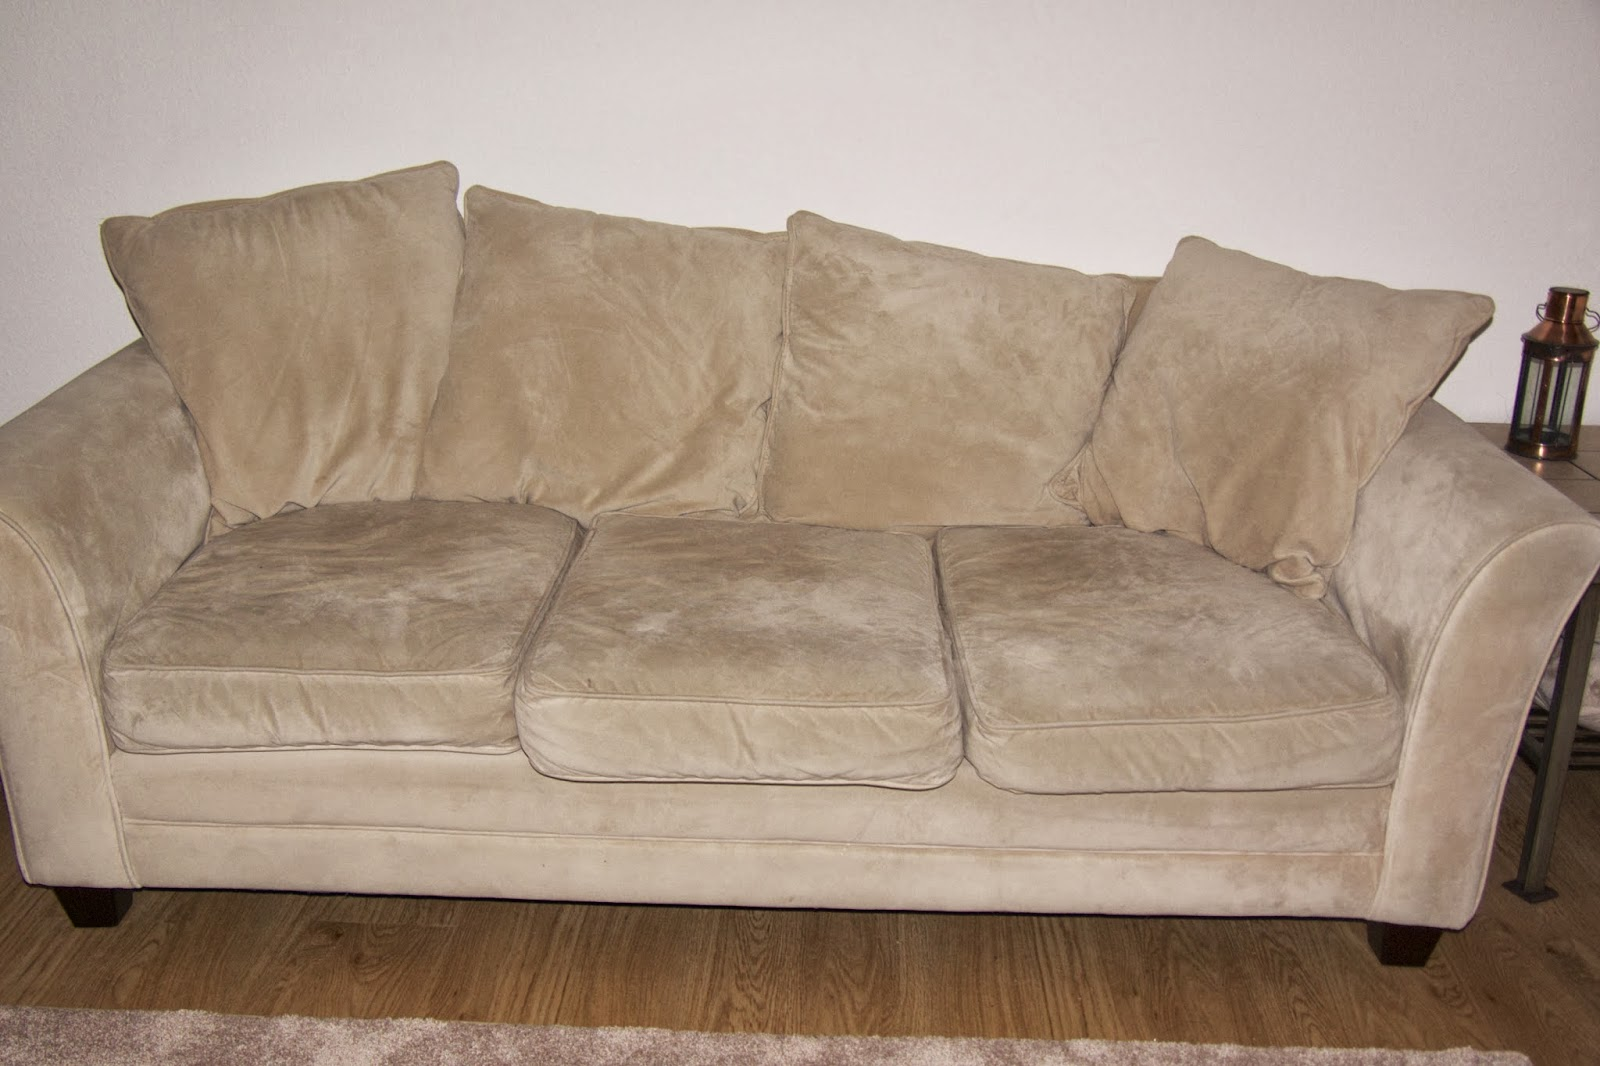 can i steam clean my leather sofa how to make a into sleeper our army life according the wife pinterest tested